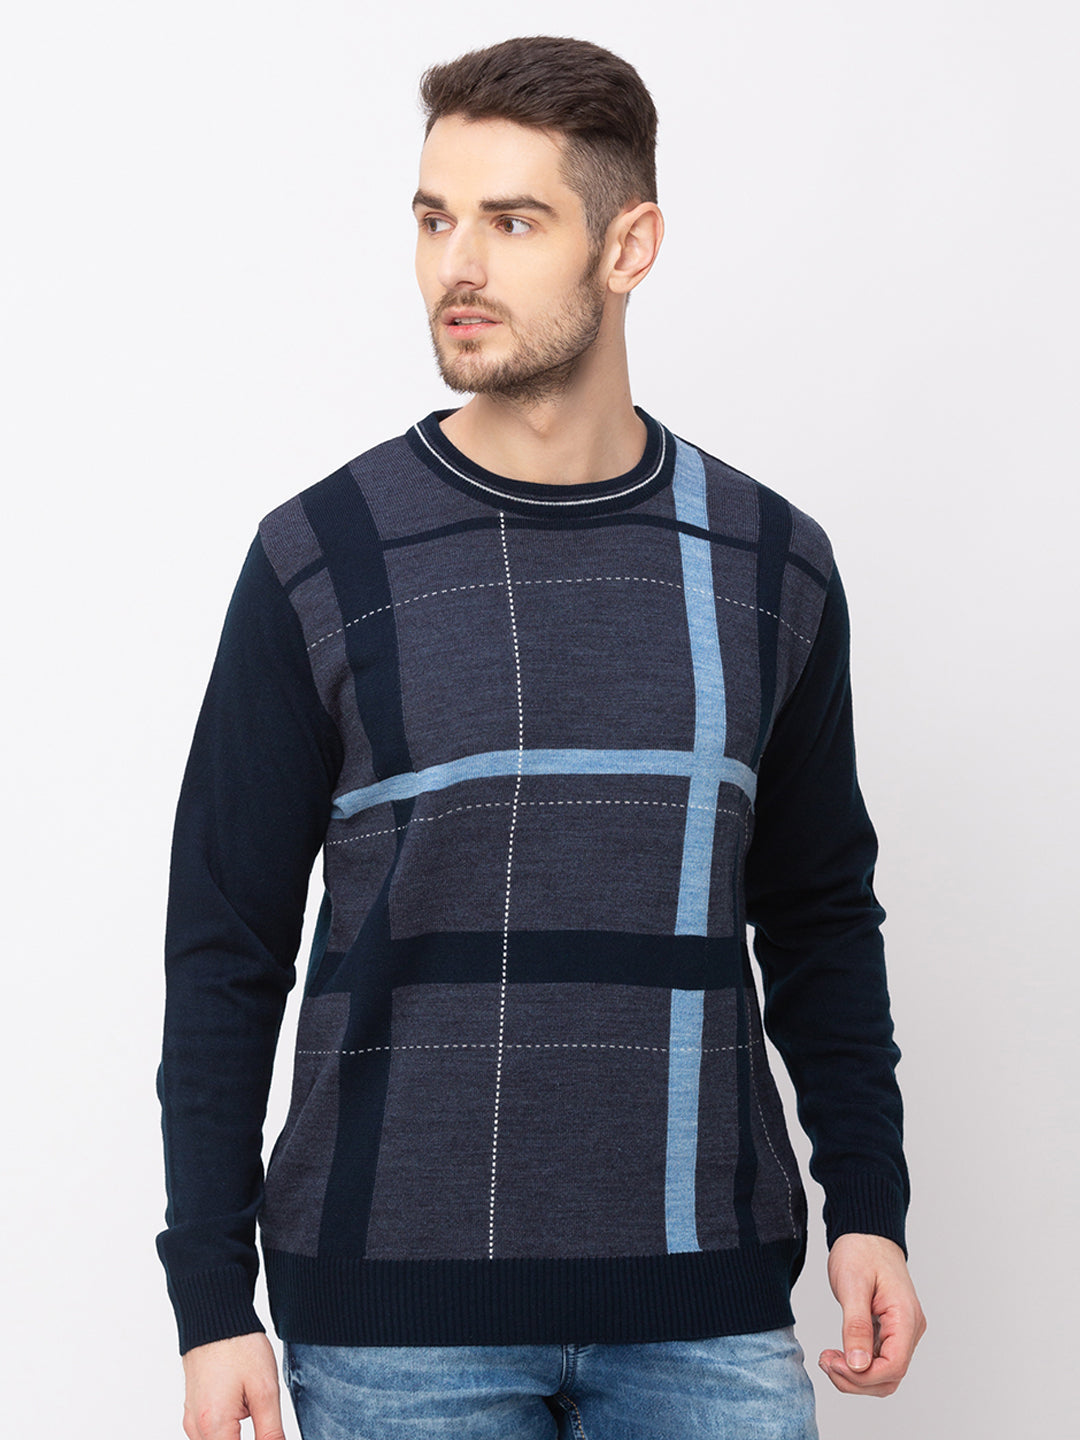 Globus Navy Blue Checked Pullover Sweater-1